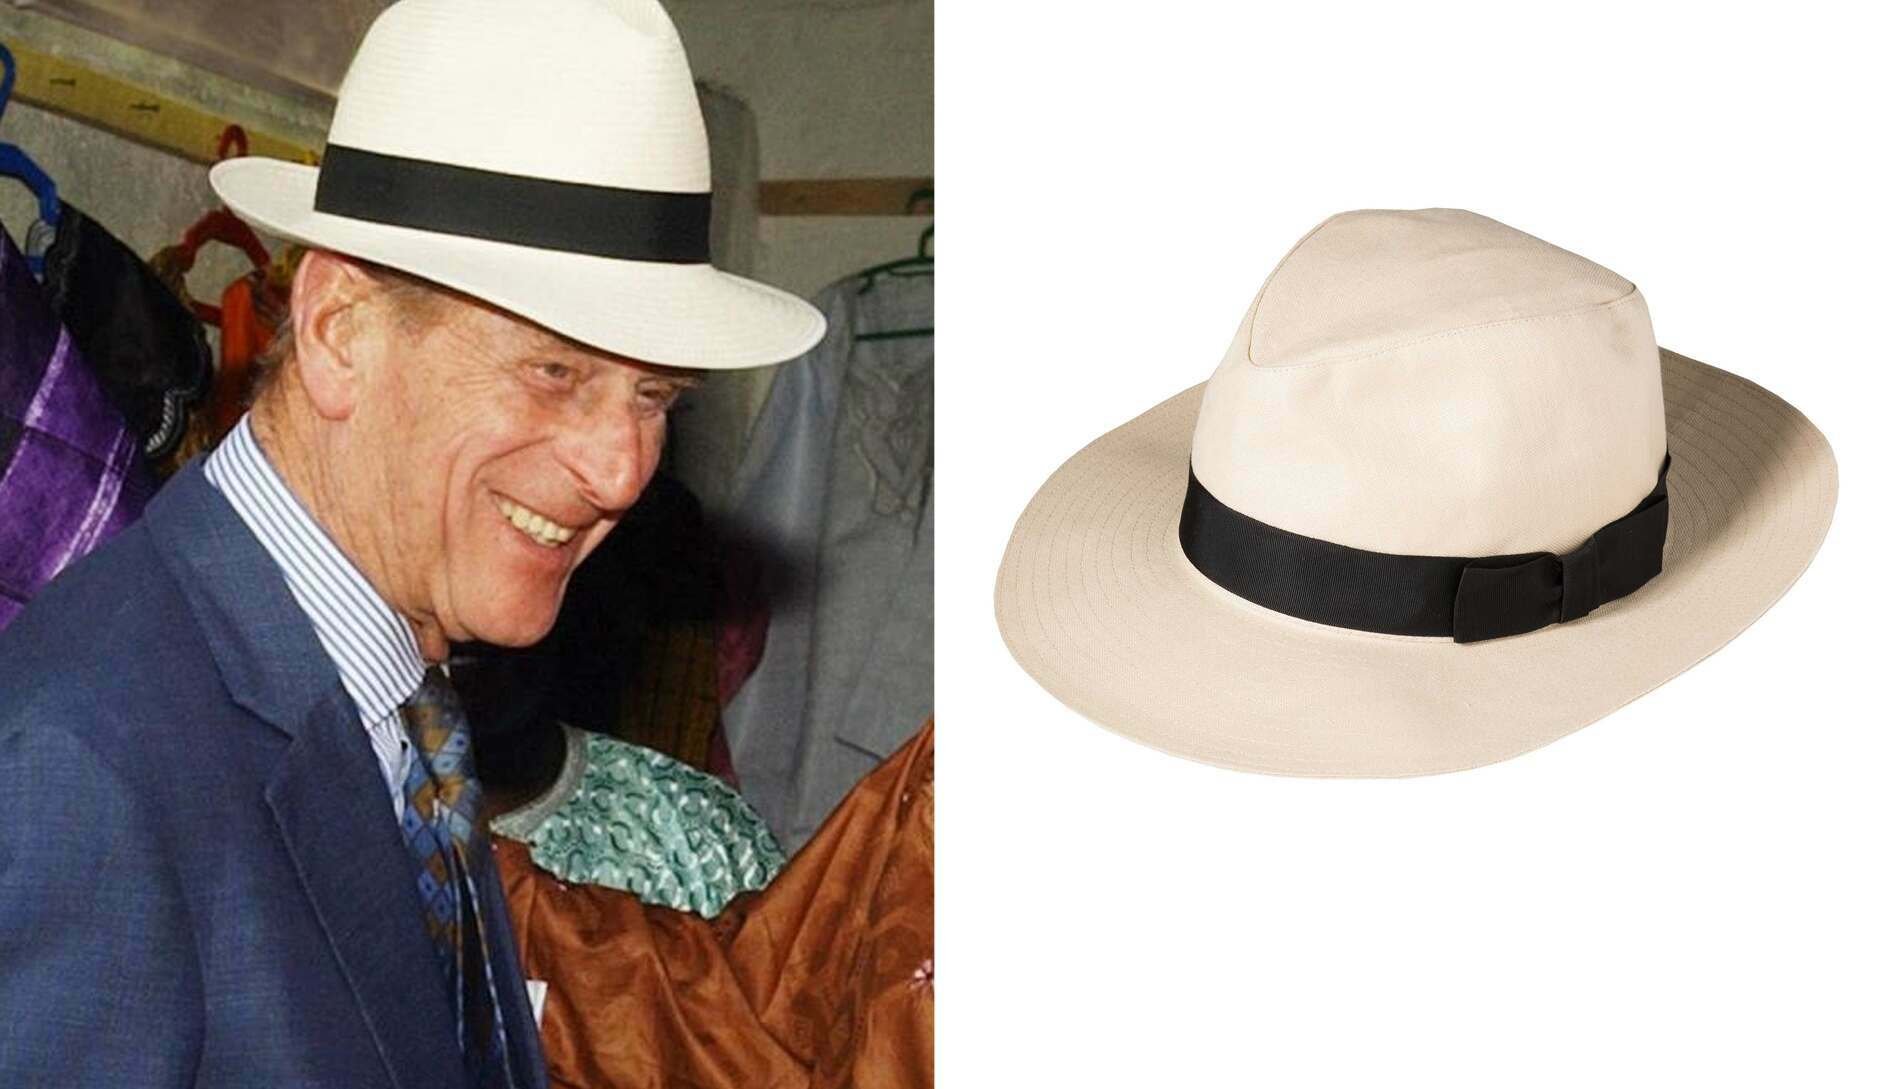 When the sun came out, the Duke could often be spotted keeping it cool in a jaunty fedora.